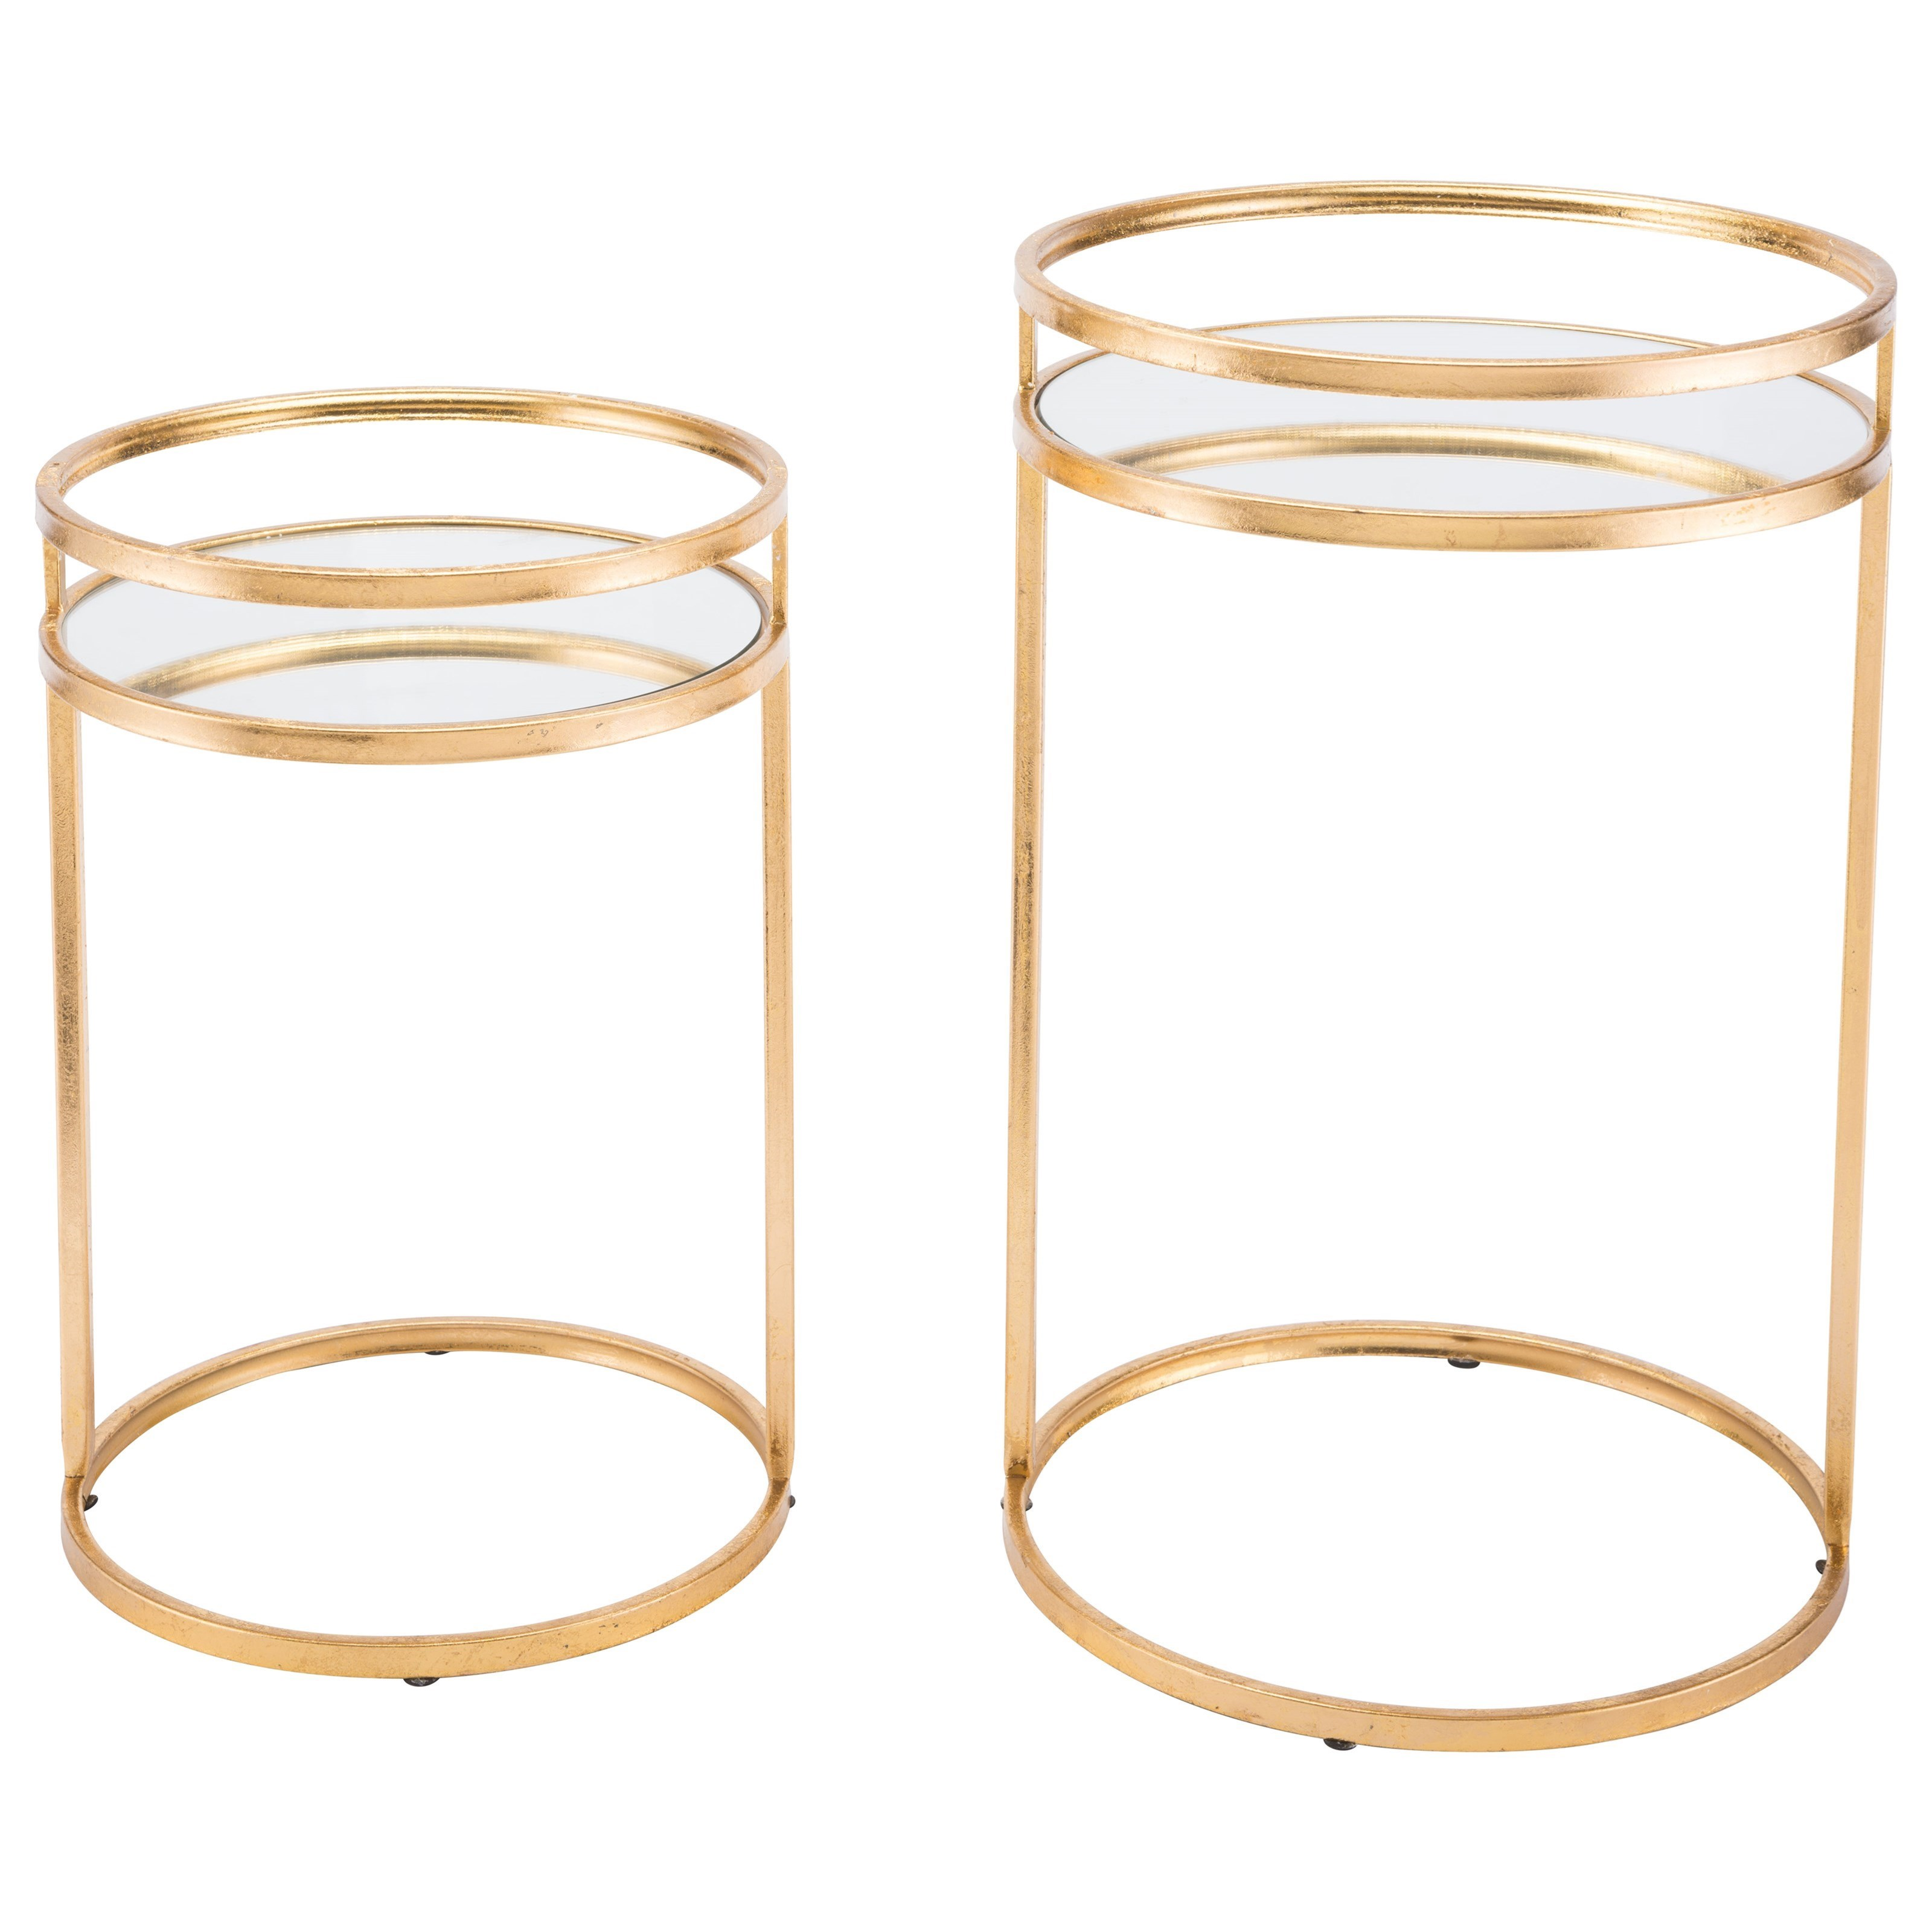 Zuo Accent Tables Set of 2 Nesting Tables - Item Number: A10783